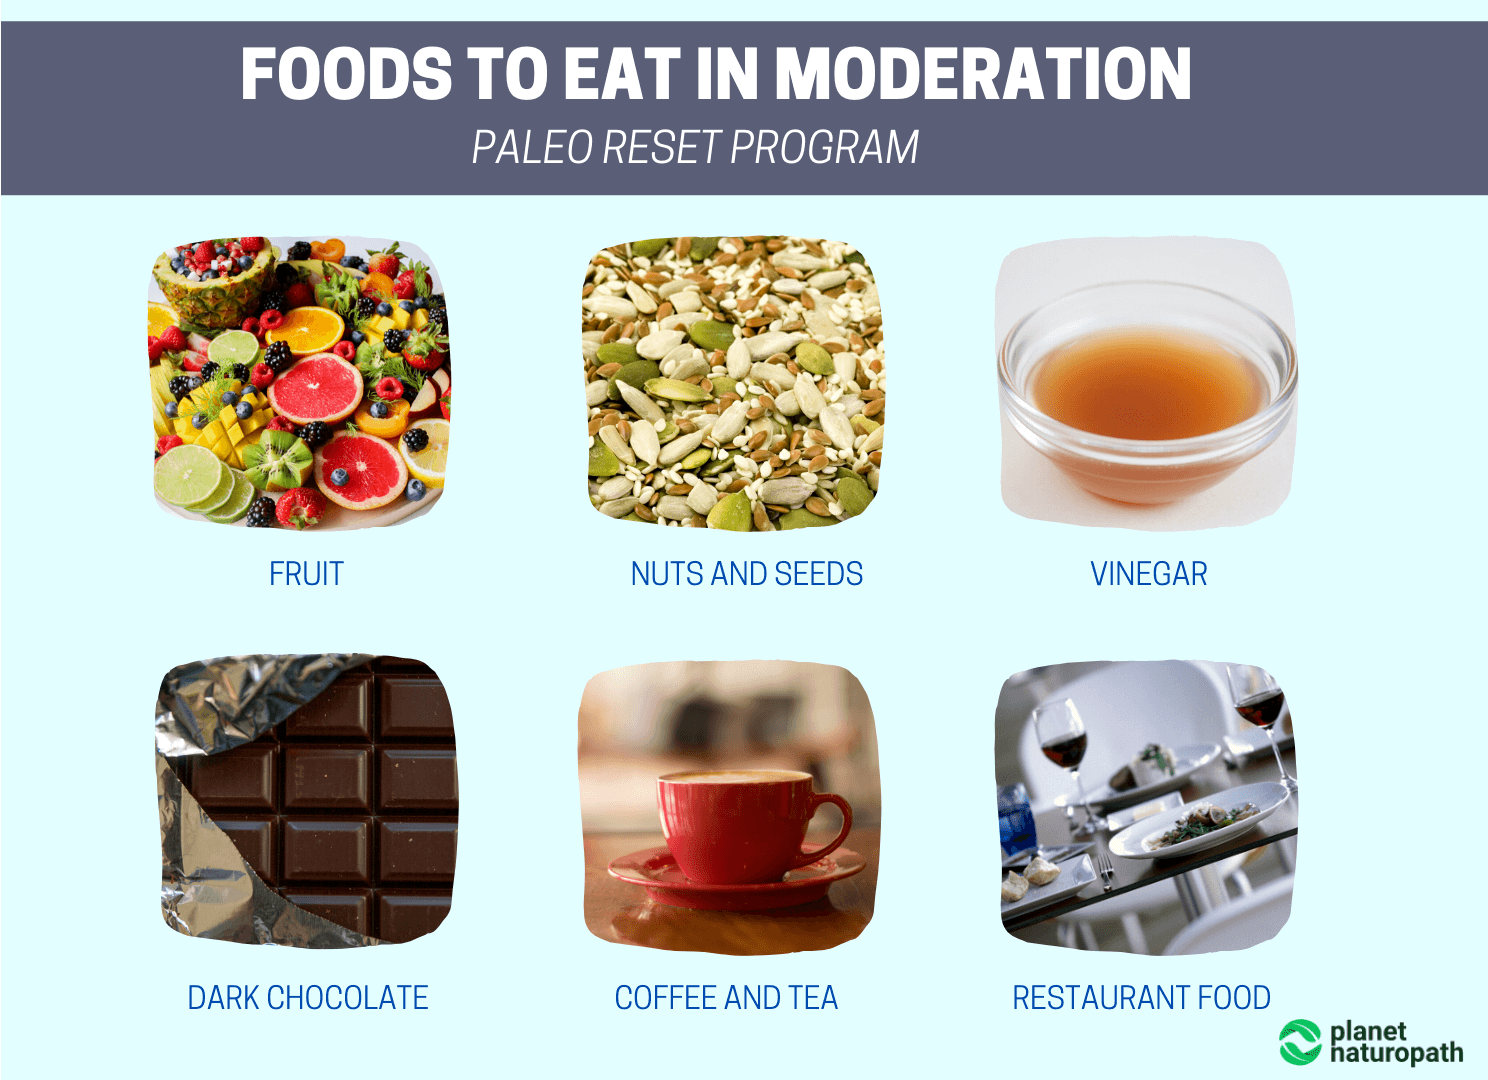 Foods-to-eat-in-moderation-Paleo-Reset-Program